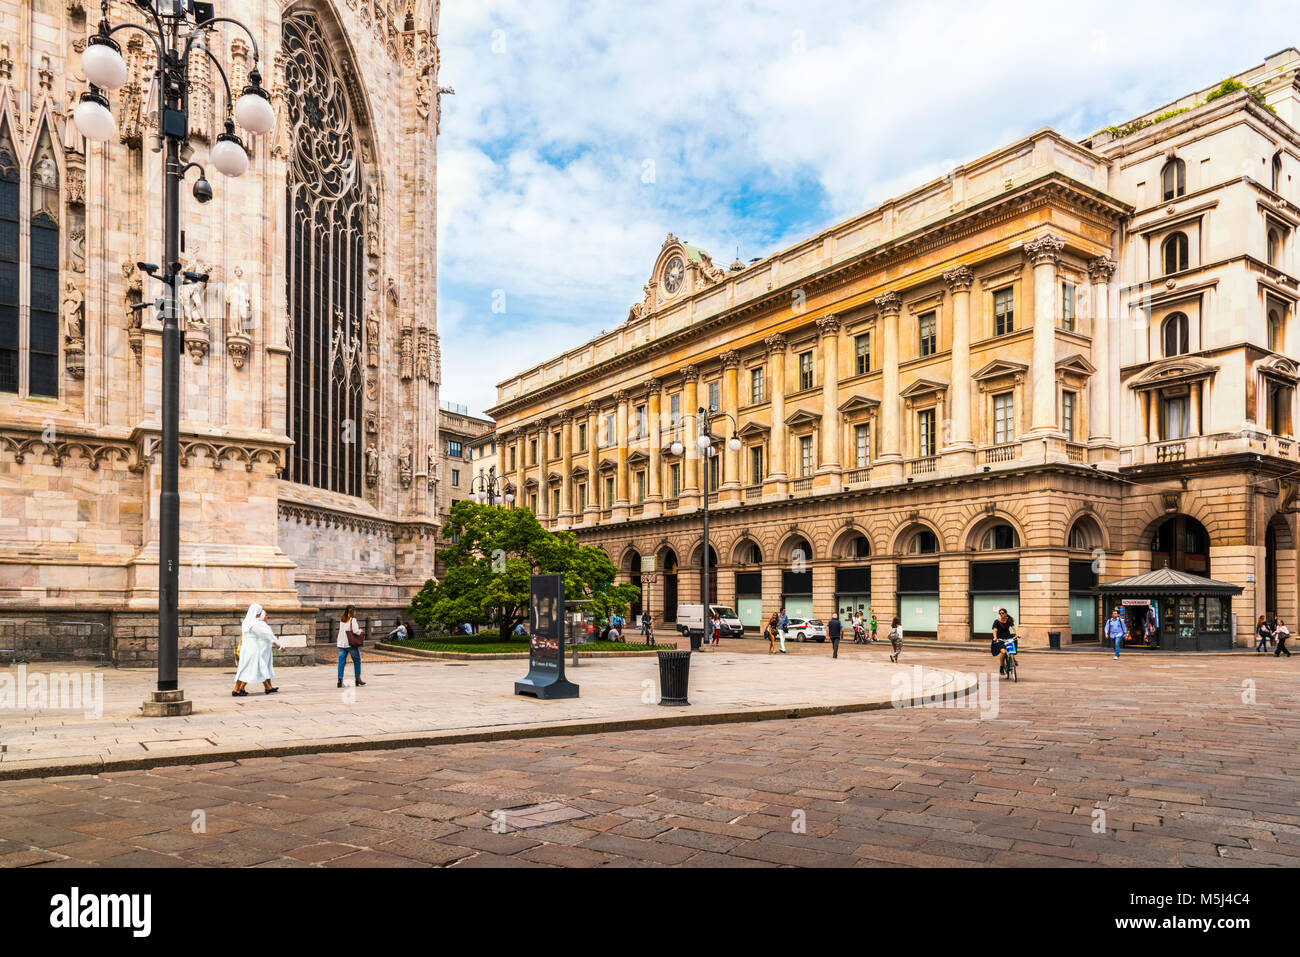 Italy, Milan, view to Piazza del Duomo with part of Milan Cathedral - Stock Image